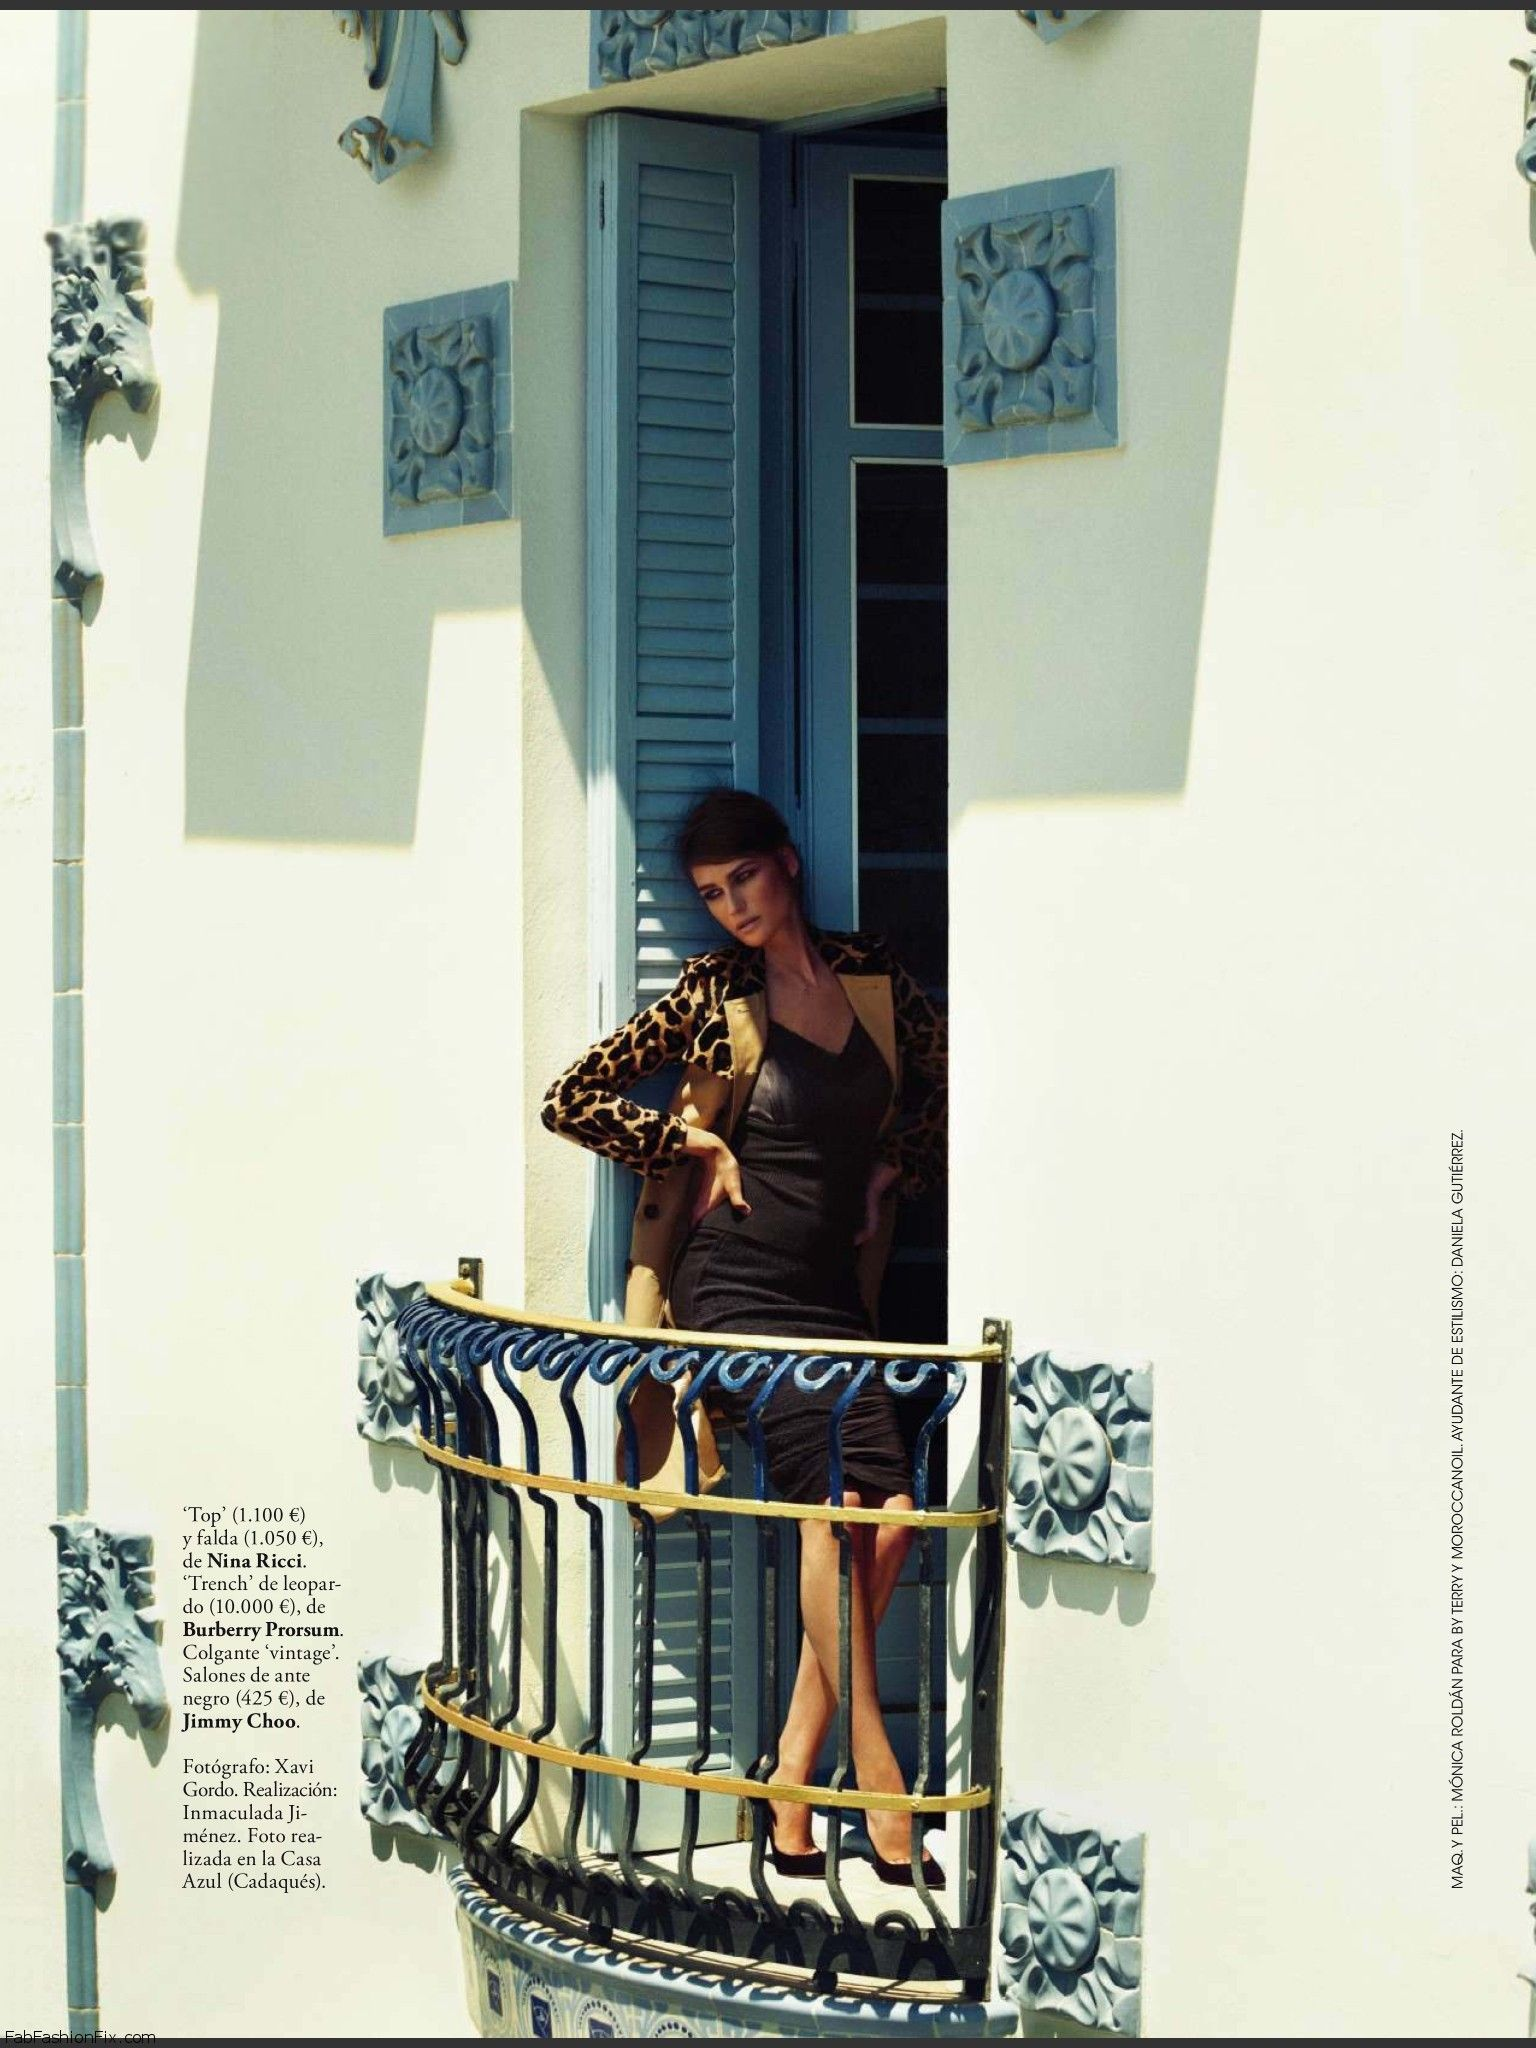 fashion_scans_remastered-eugenia_volodina-elle_espana-september_2013-scanned_by_vampirehorde-hq-26